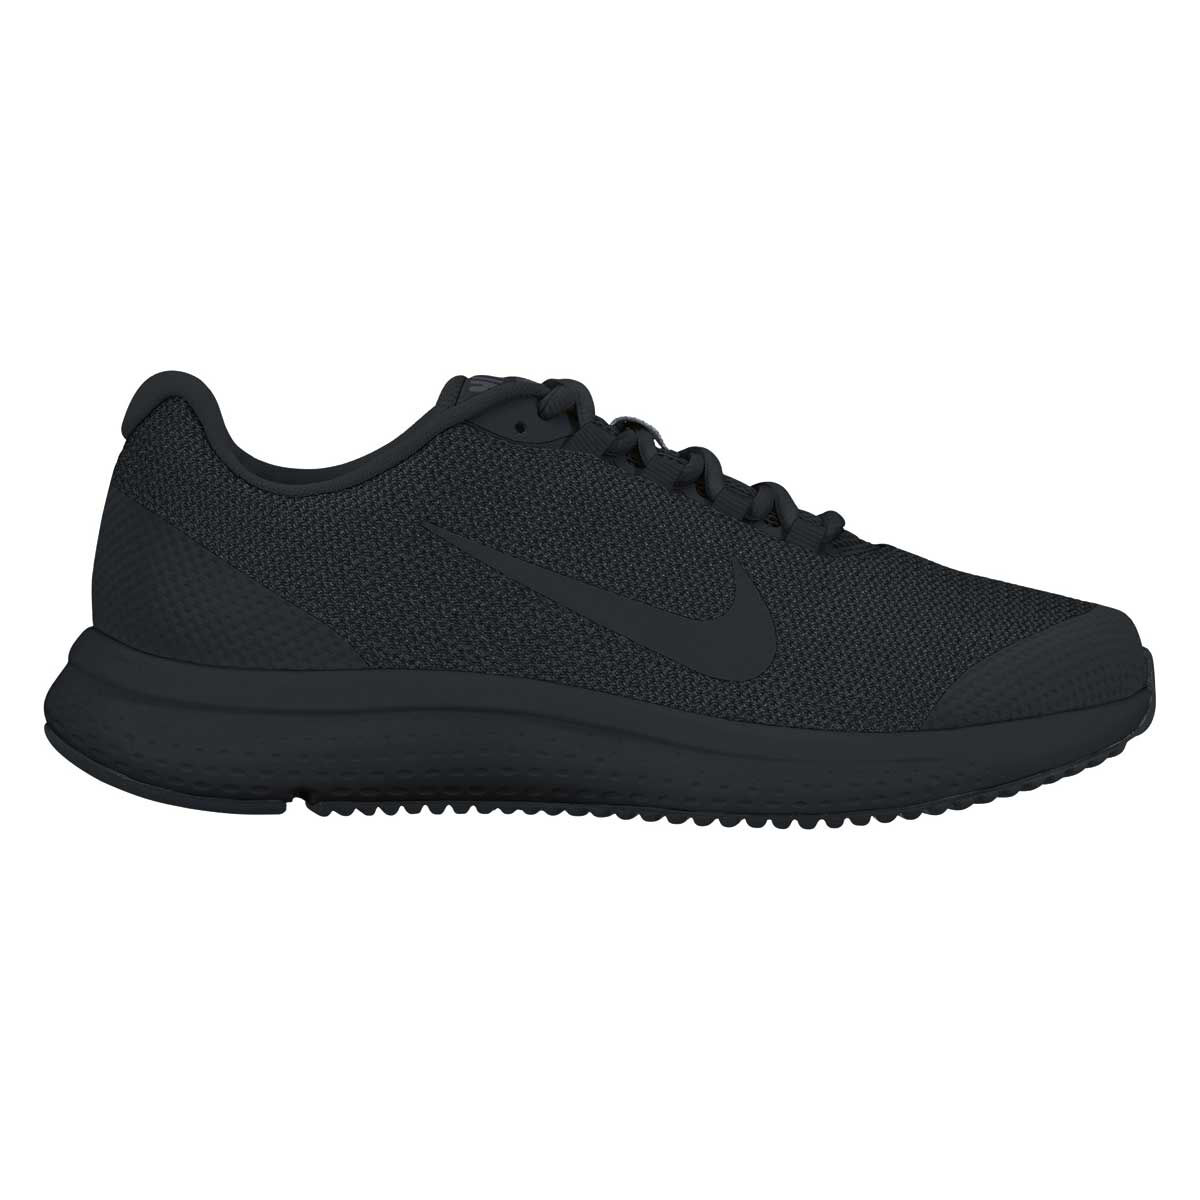 finest selection d41a1 2920b ... promo code for nike run all day mens running shoes black black us 8  black black